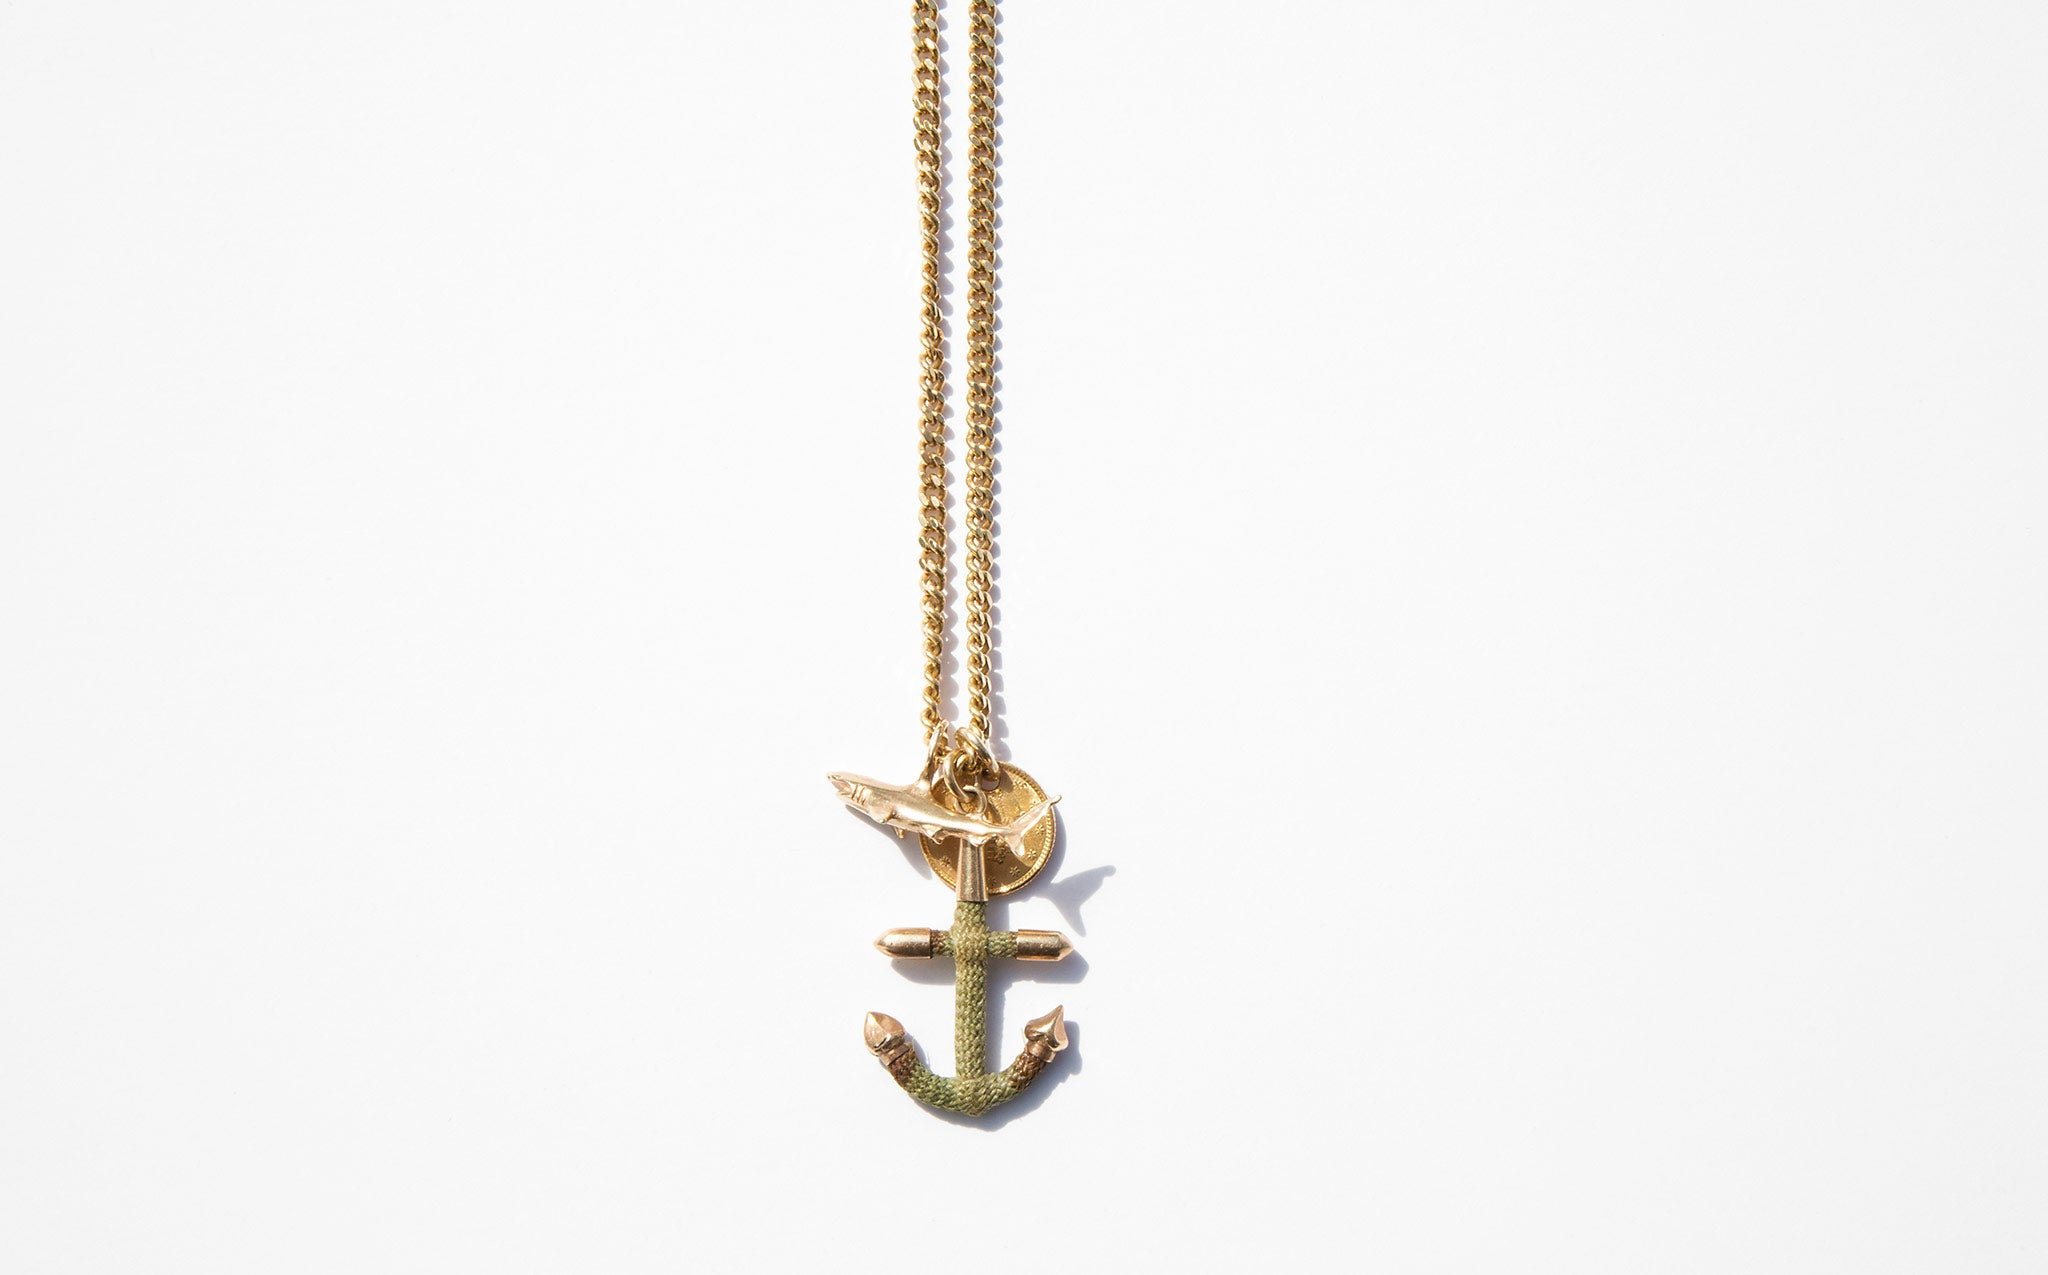 Salty Seas Talisman Necklace